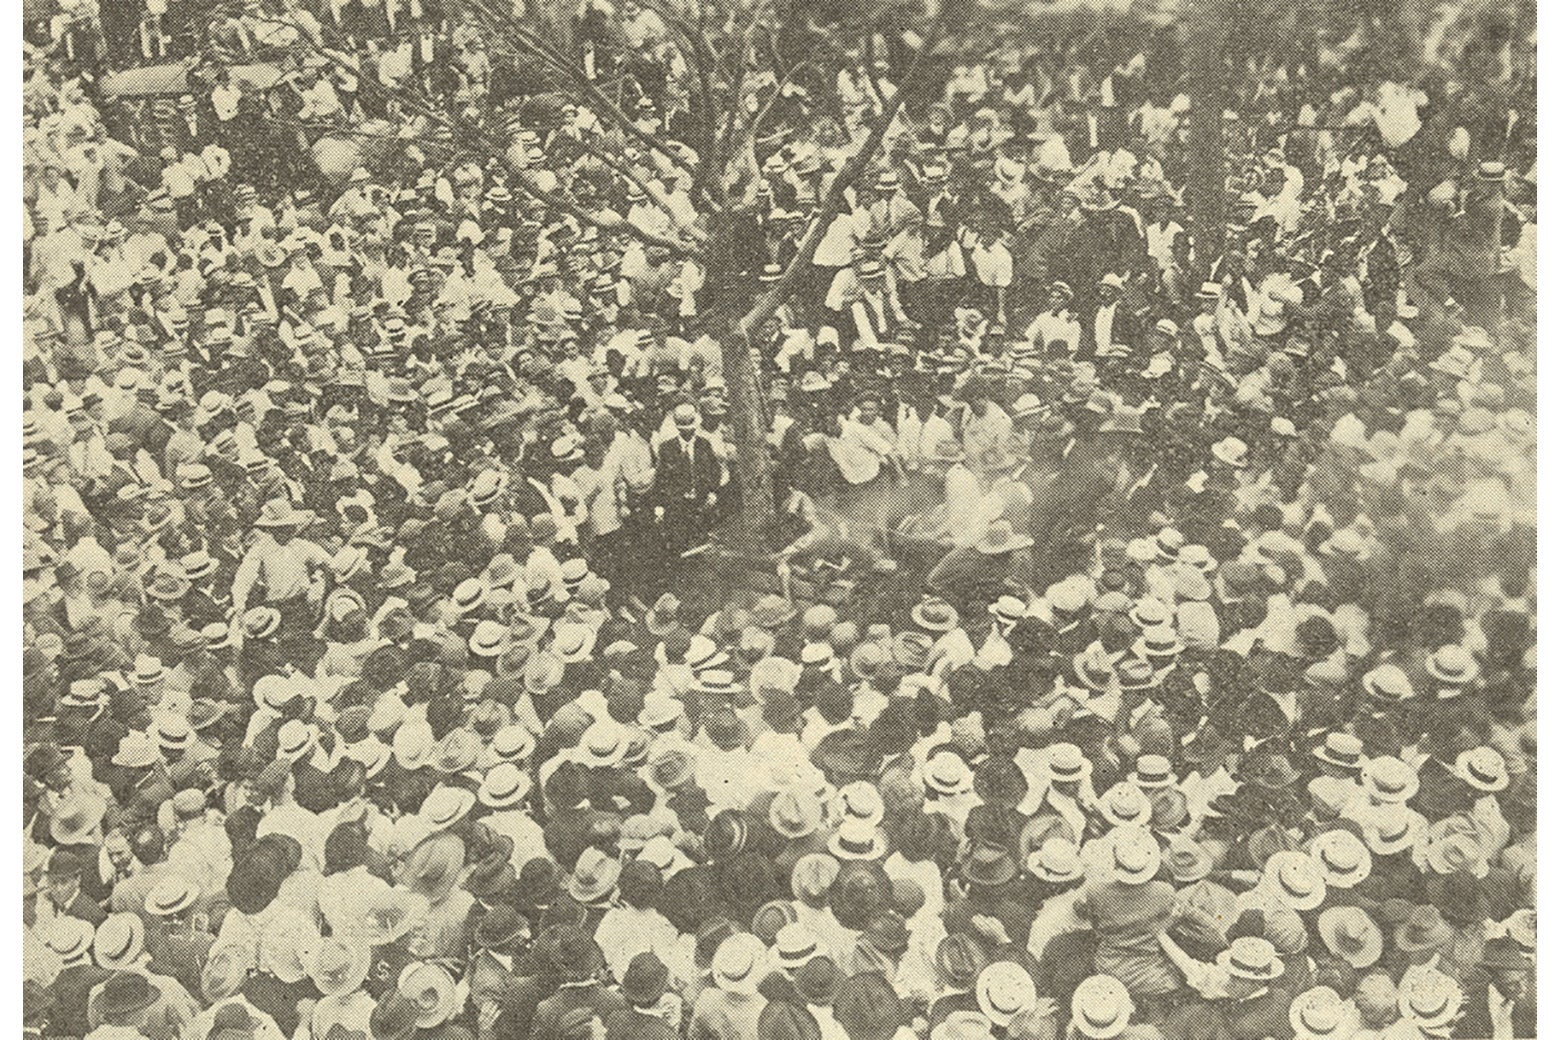 A shot from a high angle of a well-dressed crowd, many wearing straw hats, surrounding Jesse Washington's lynching.